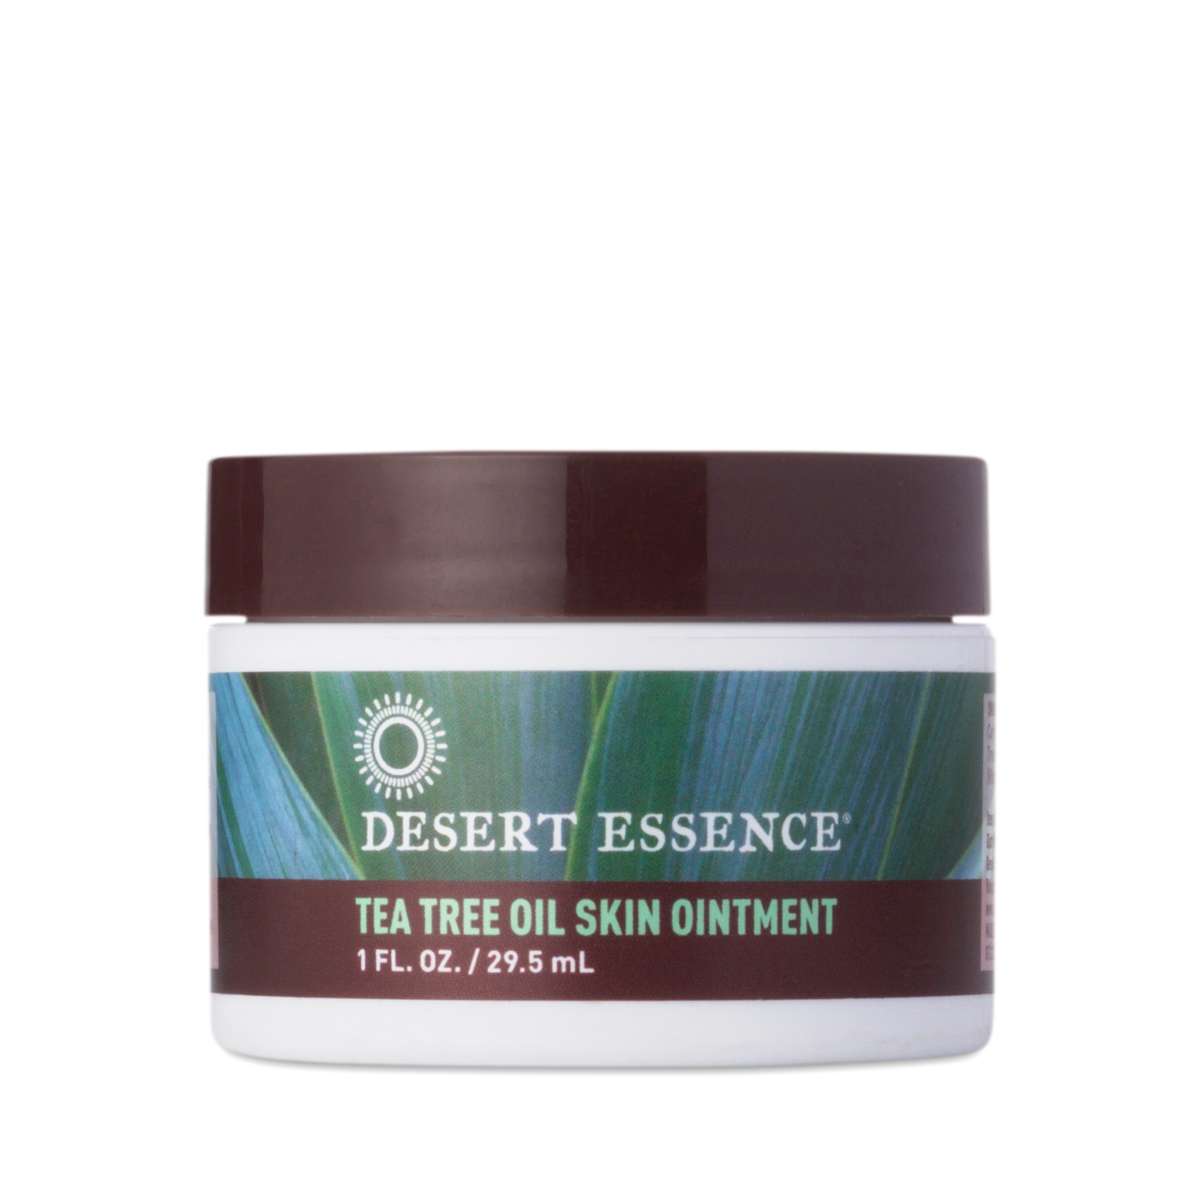 2 Pack - Desert Essence Gentle Face Scrub 4 oz Skincare LdeL Cosmetics Retinol Day Cream SPF 20 1.70 oz (Pack of 3)